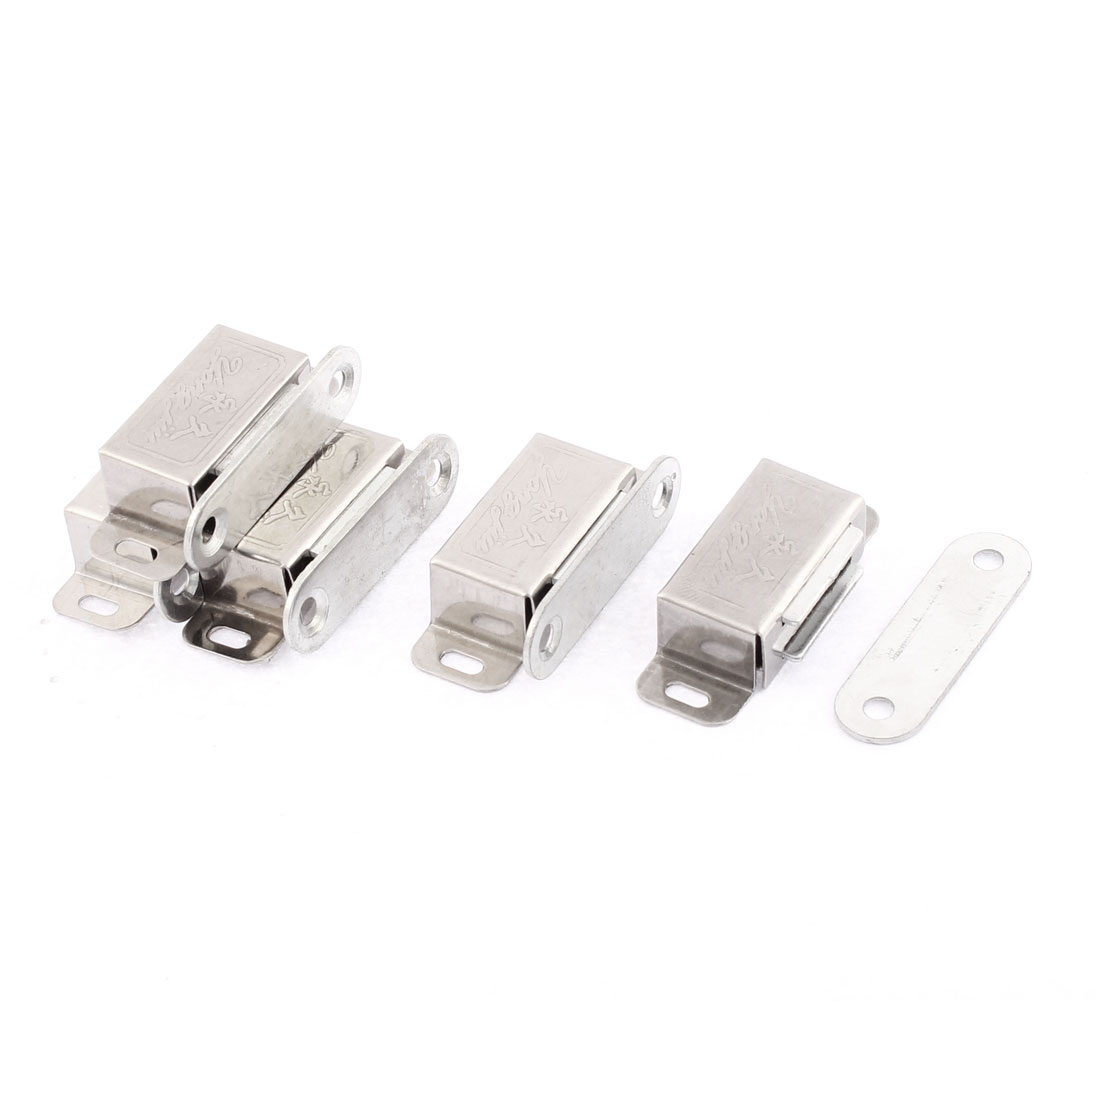 Door Wardrobe Cupboard Cabinet 46mm Length Magnetic Latch Catch Silver Tone 5Pcs